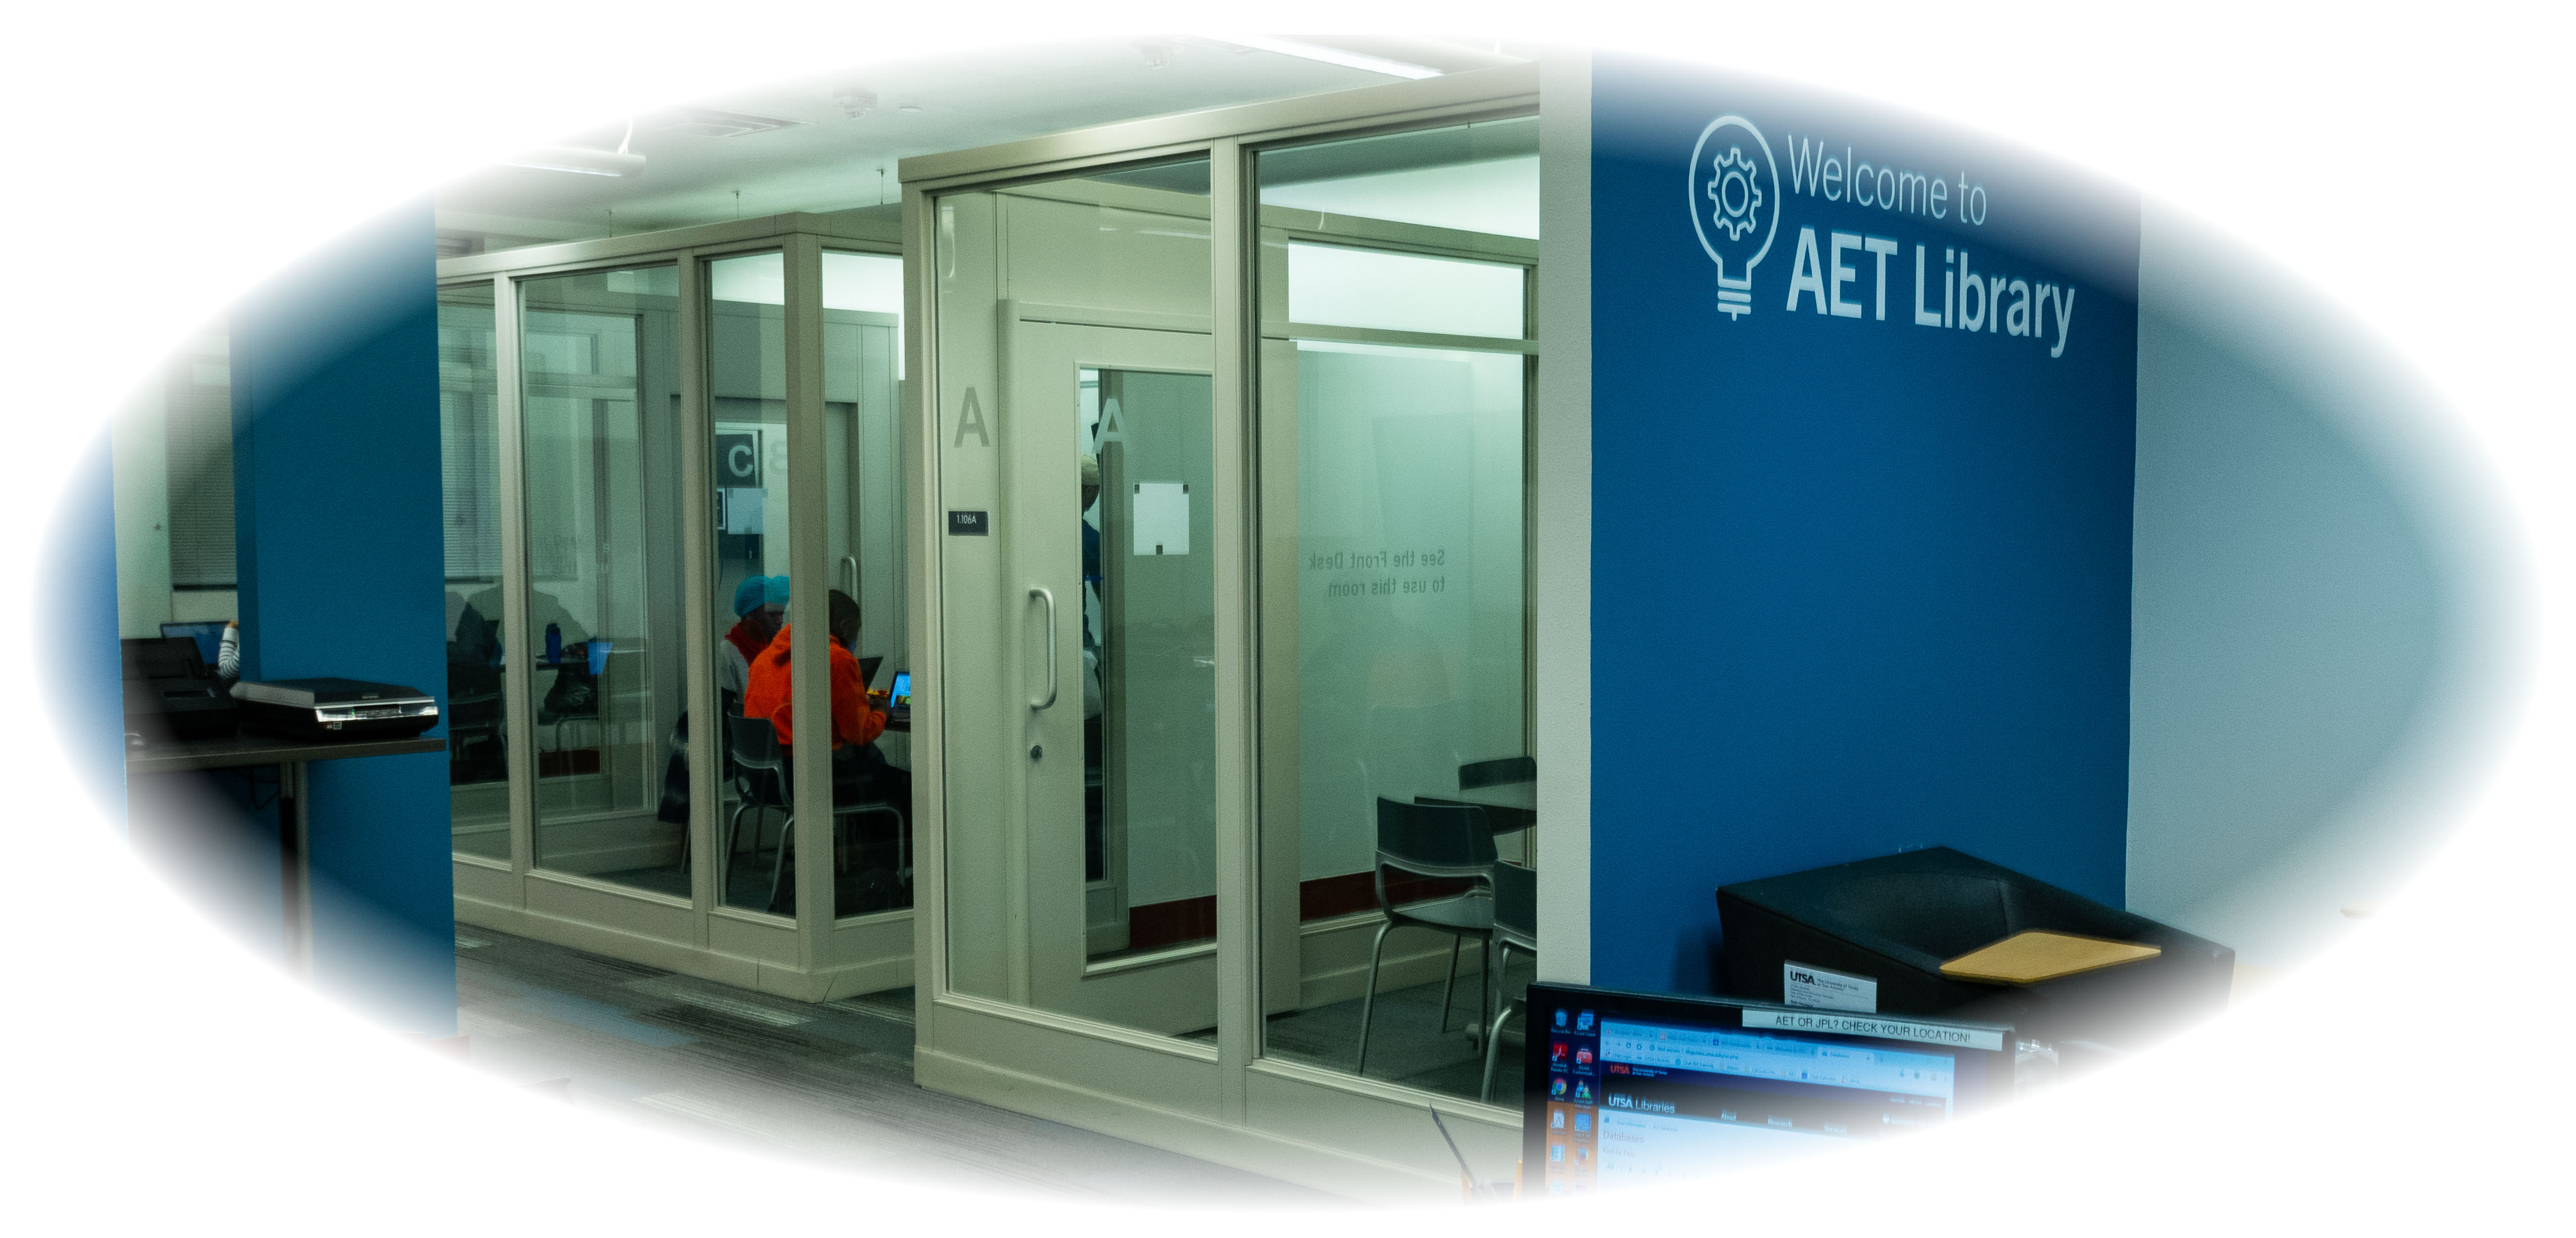 AET Library Entrance